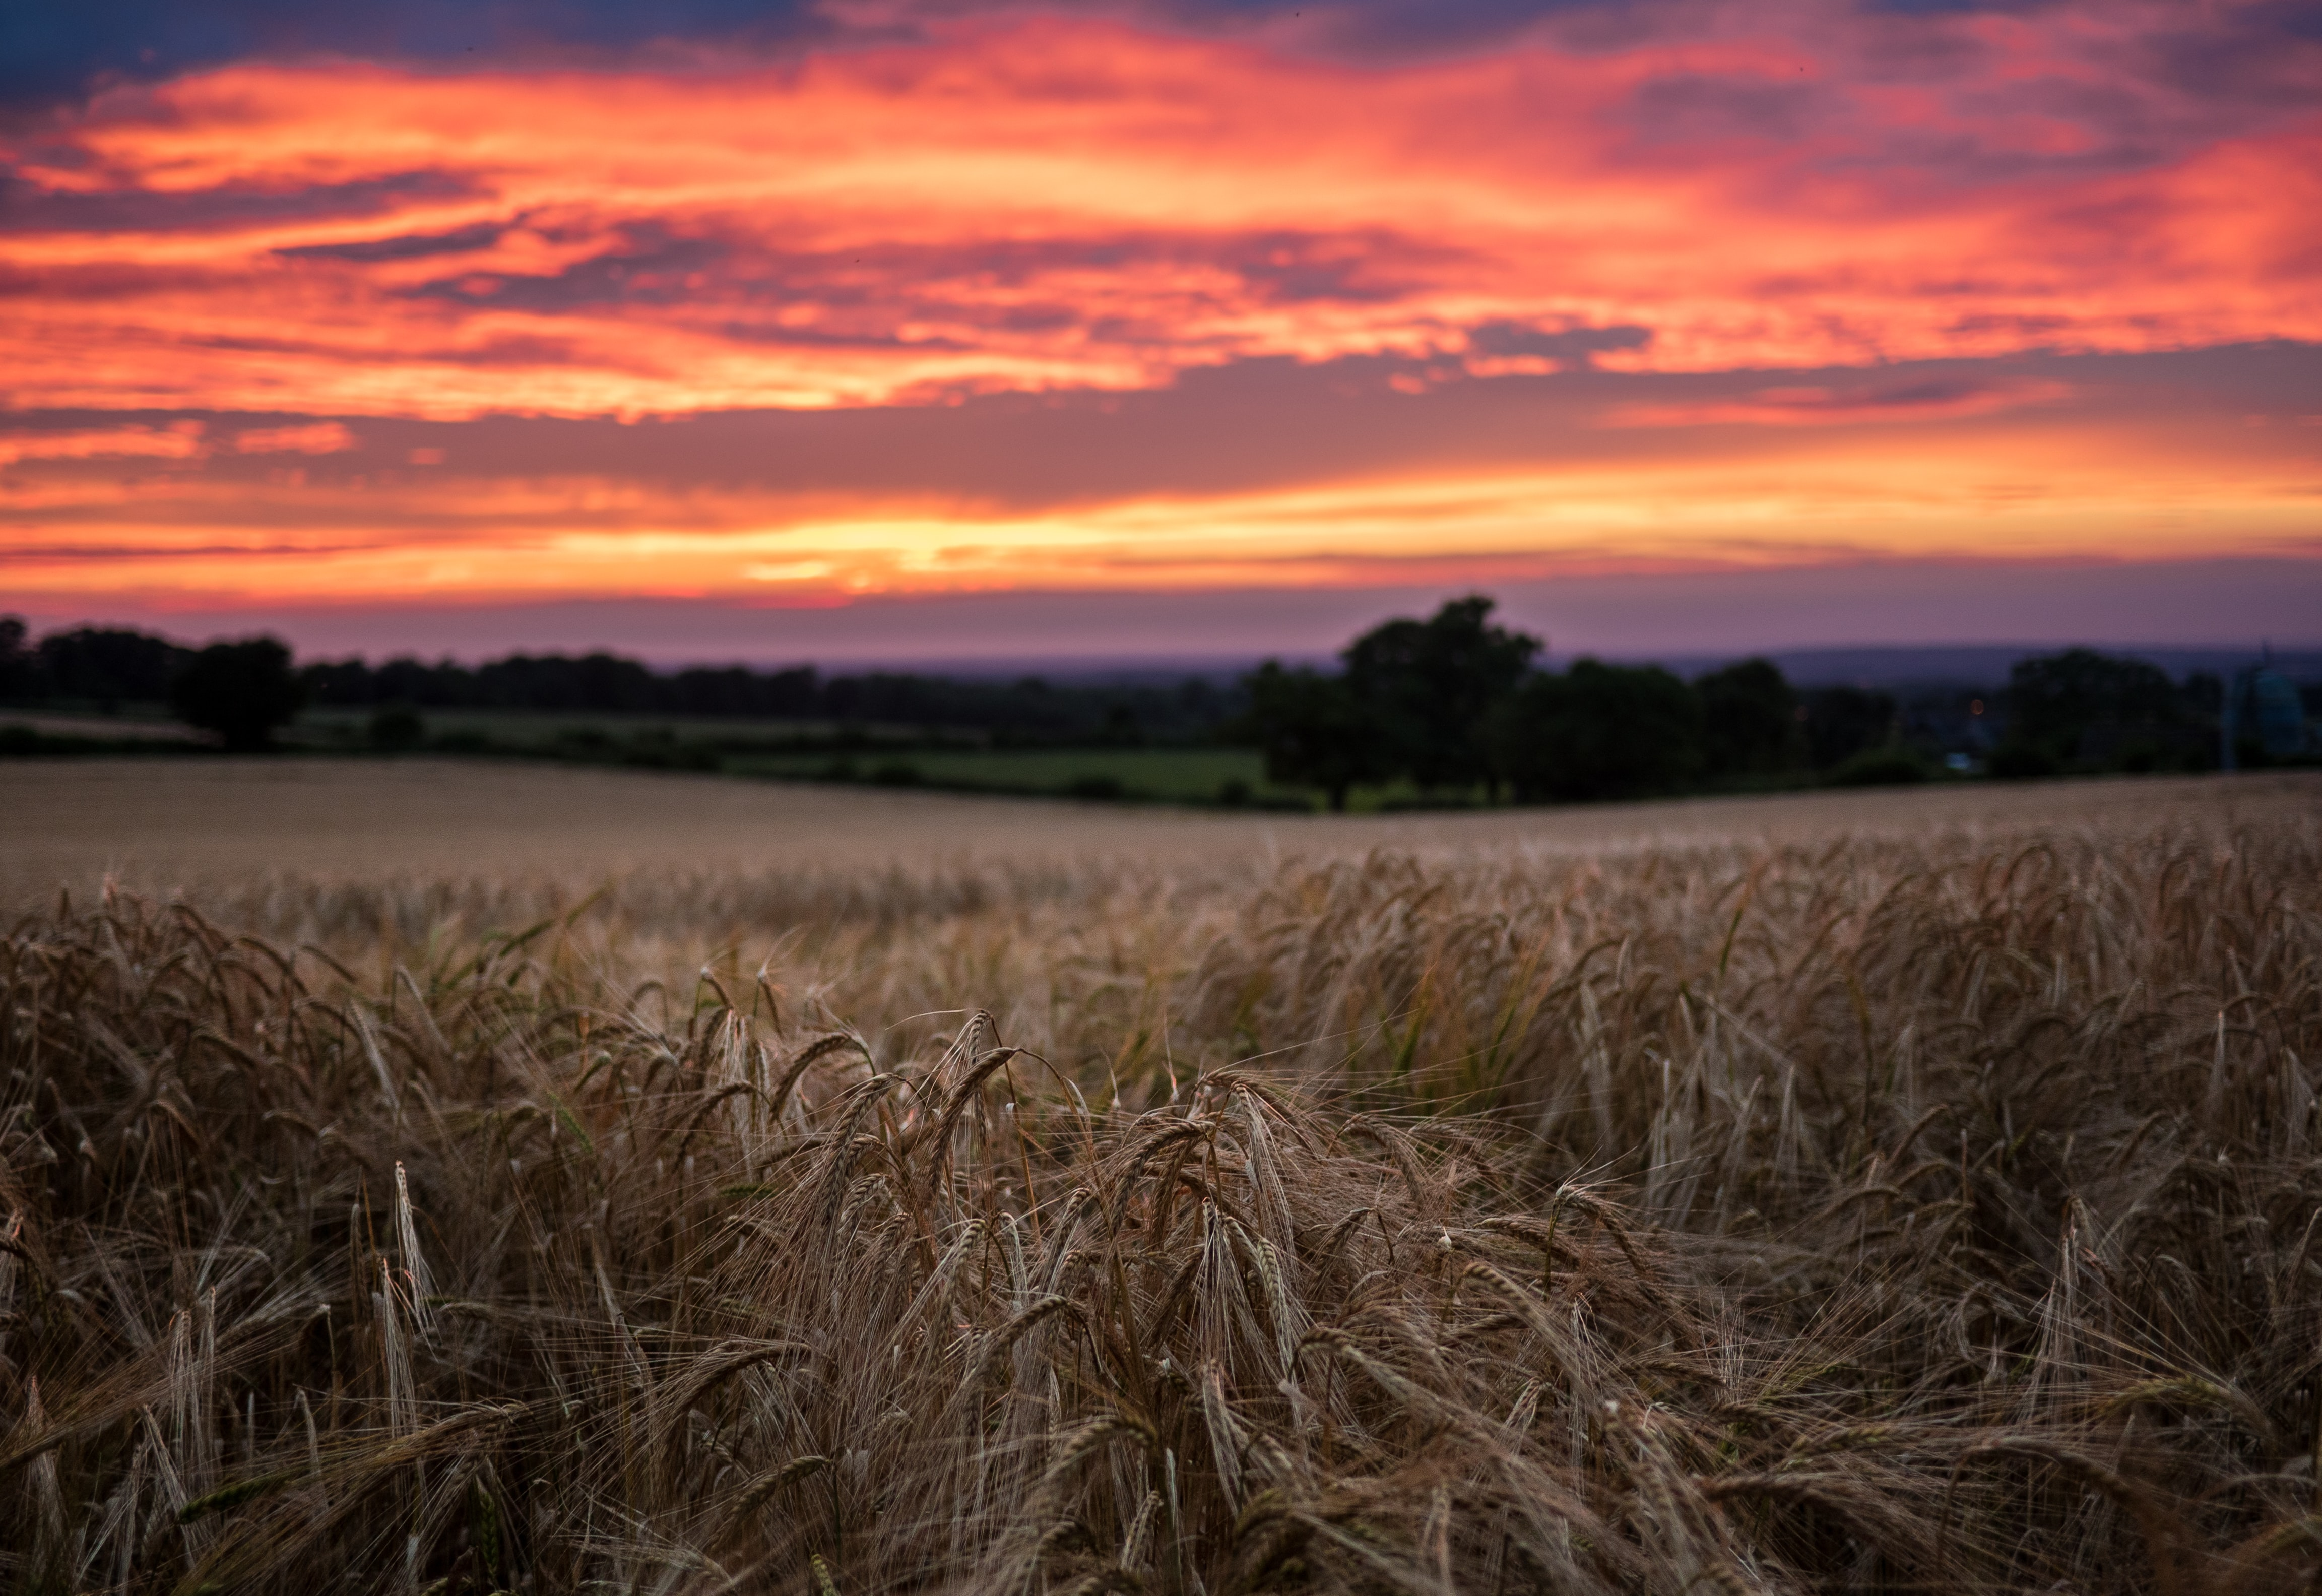 Wheat field in the countryside during sunset